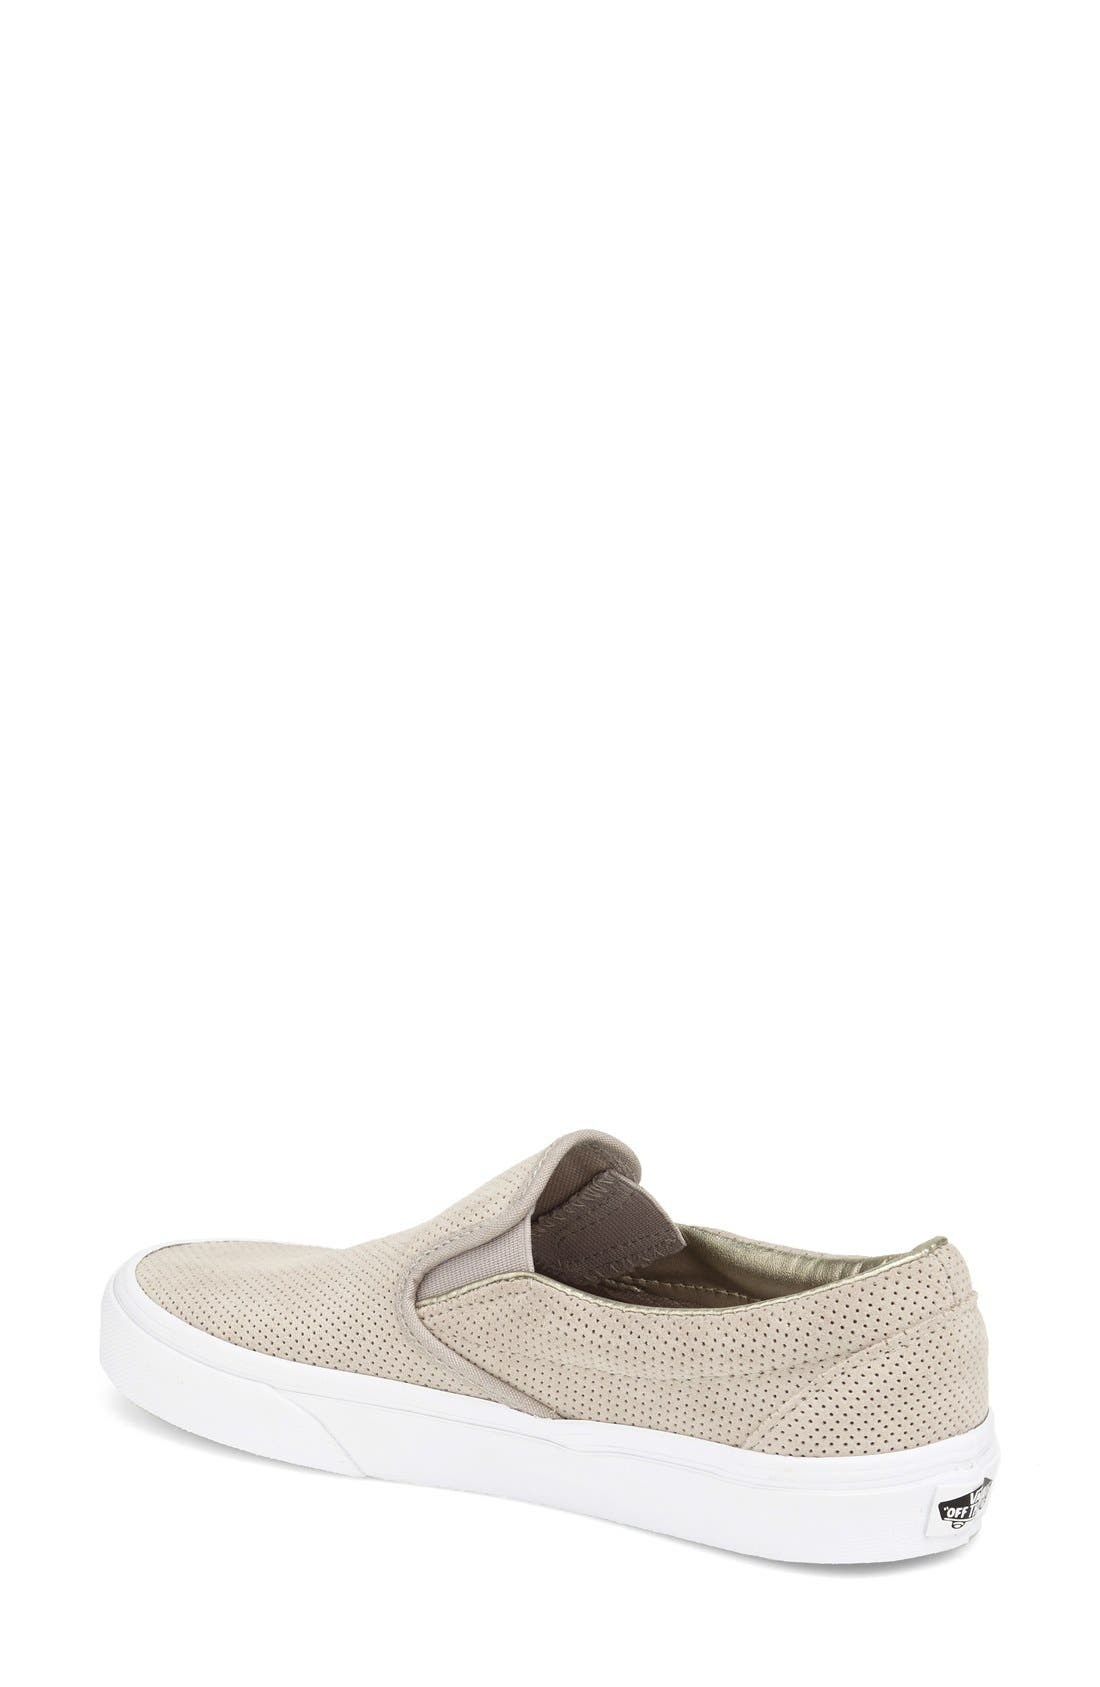 Classic Slip-On Sneaker,                             Alternate thumbnail 91, color,